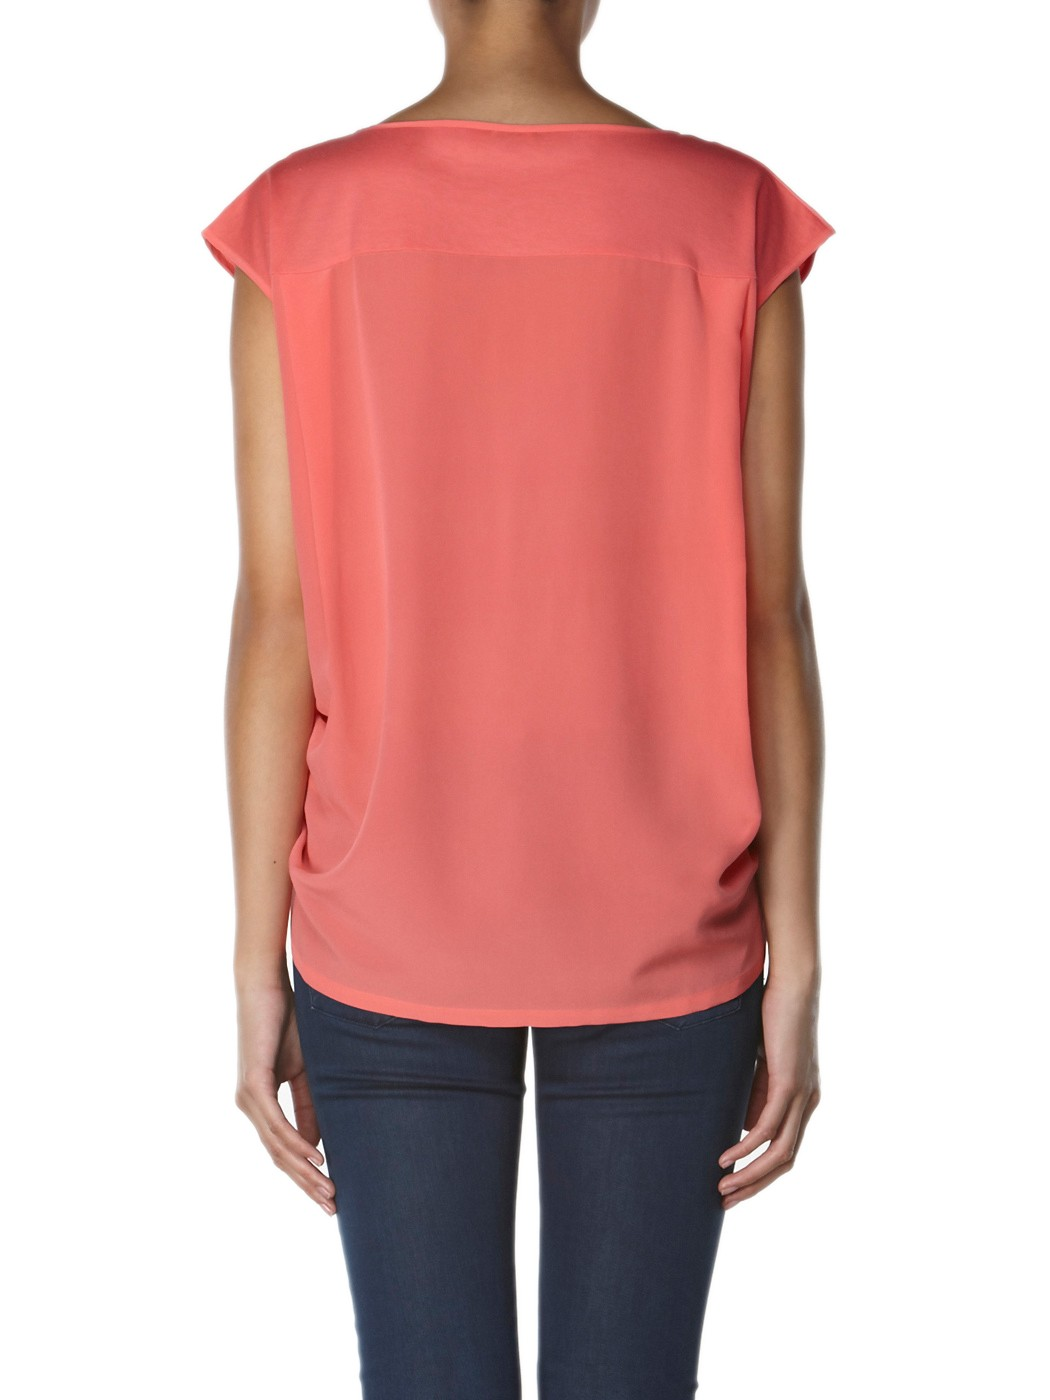 Asymmetrisches T-Shirt aus Seiden-Mix